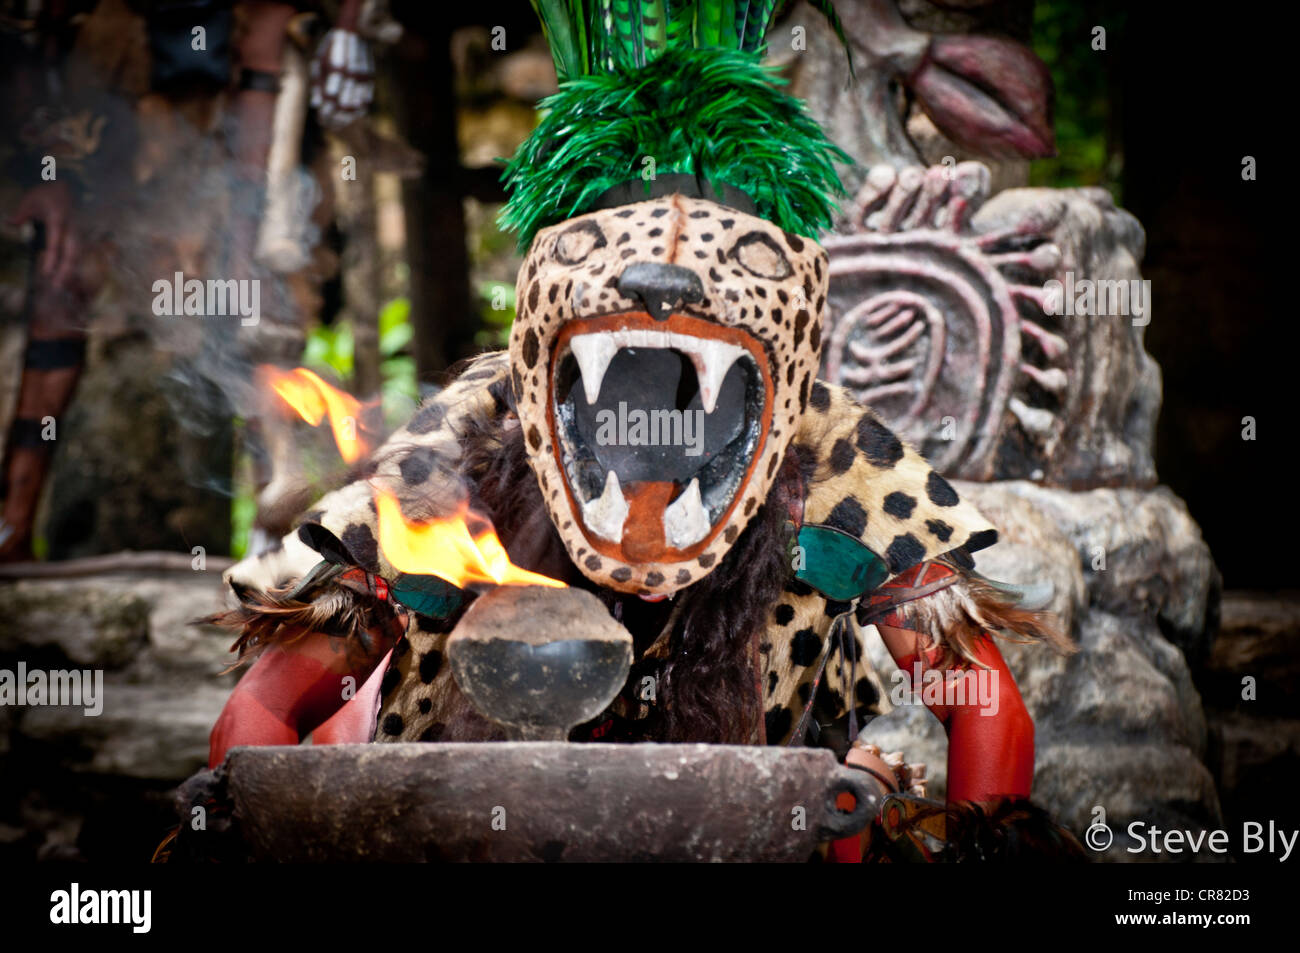 A Maya fokllore fire dance ritual is performed by a mystical performer in Xcaret Show, Riviera Maya,, Quintana Roo, - Stock Image